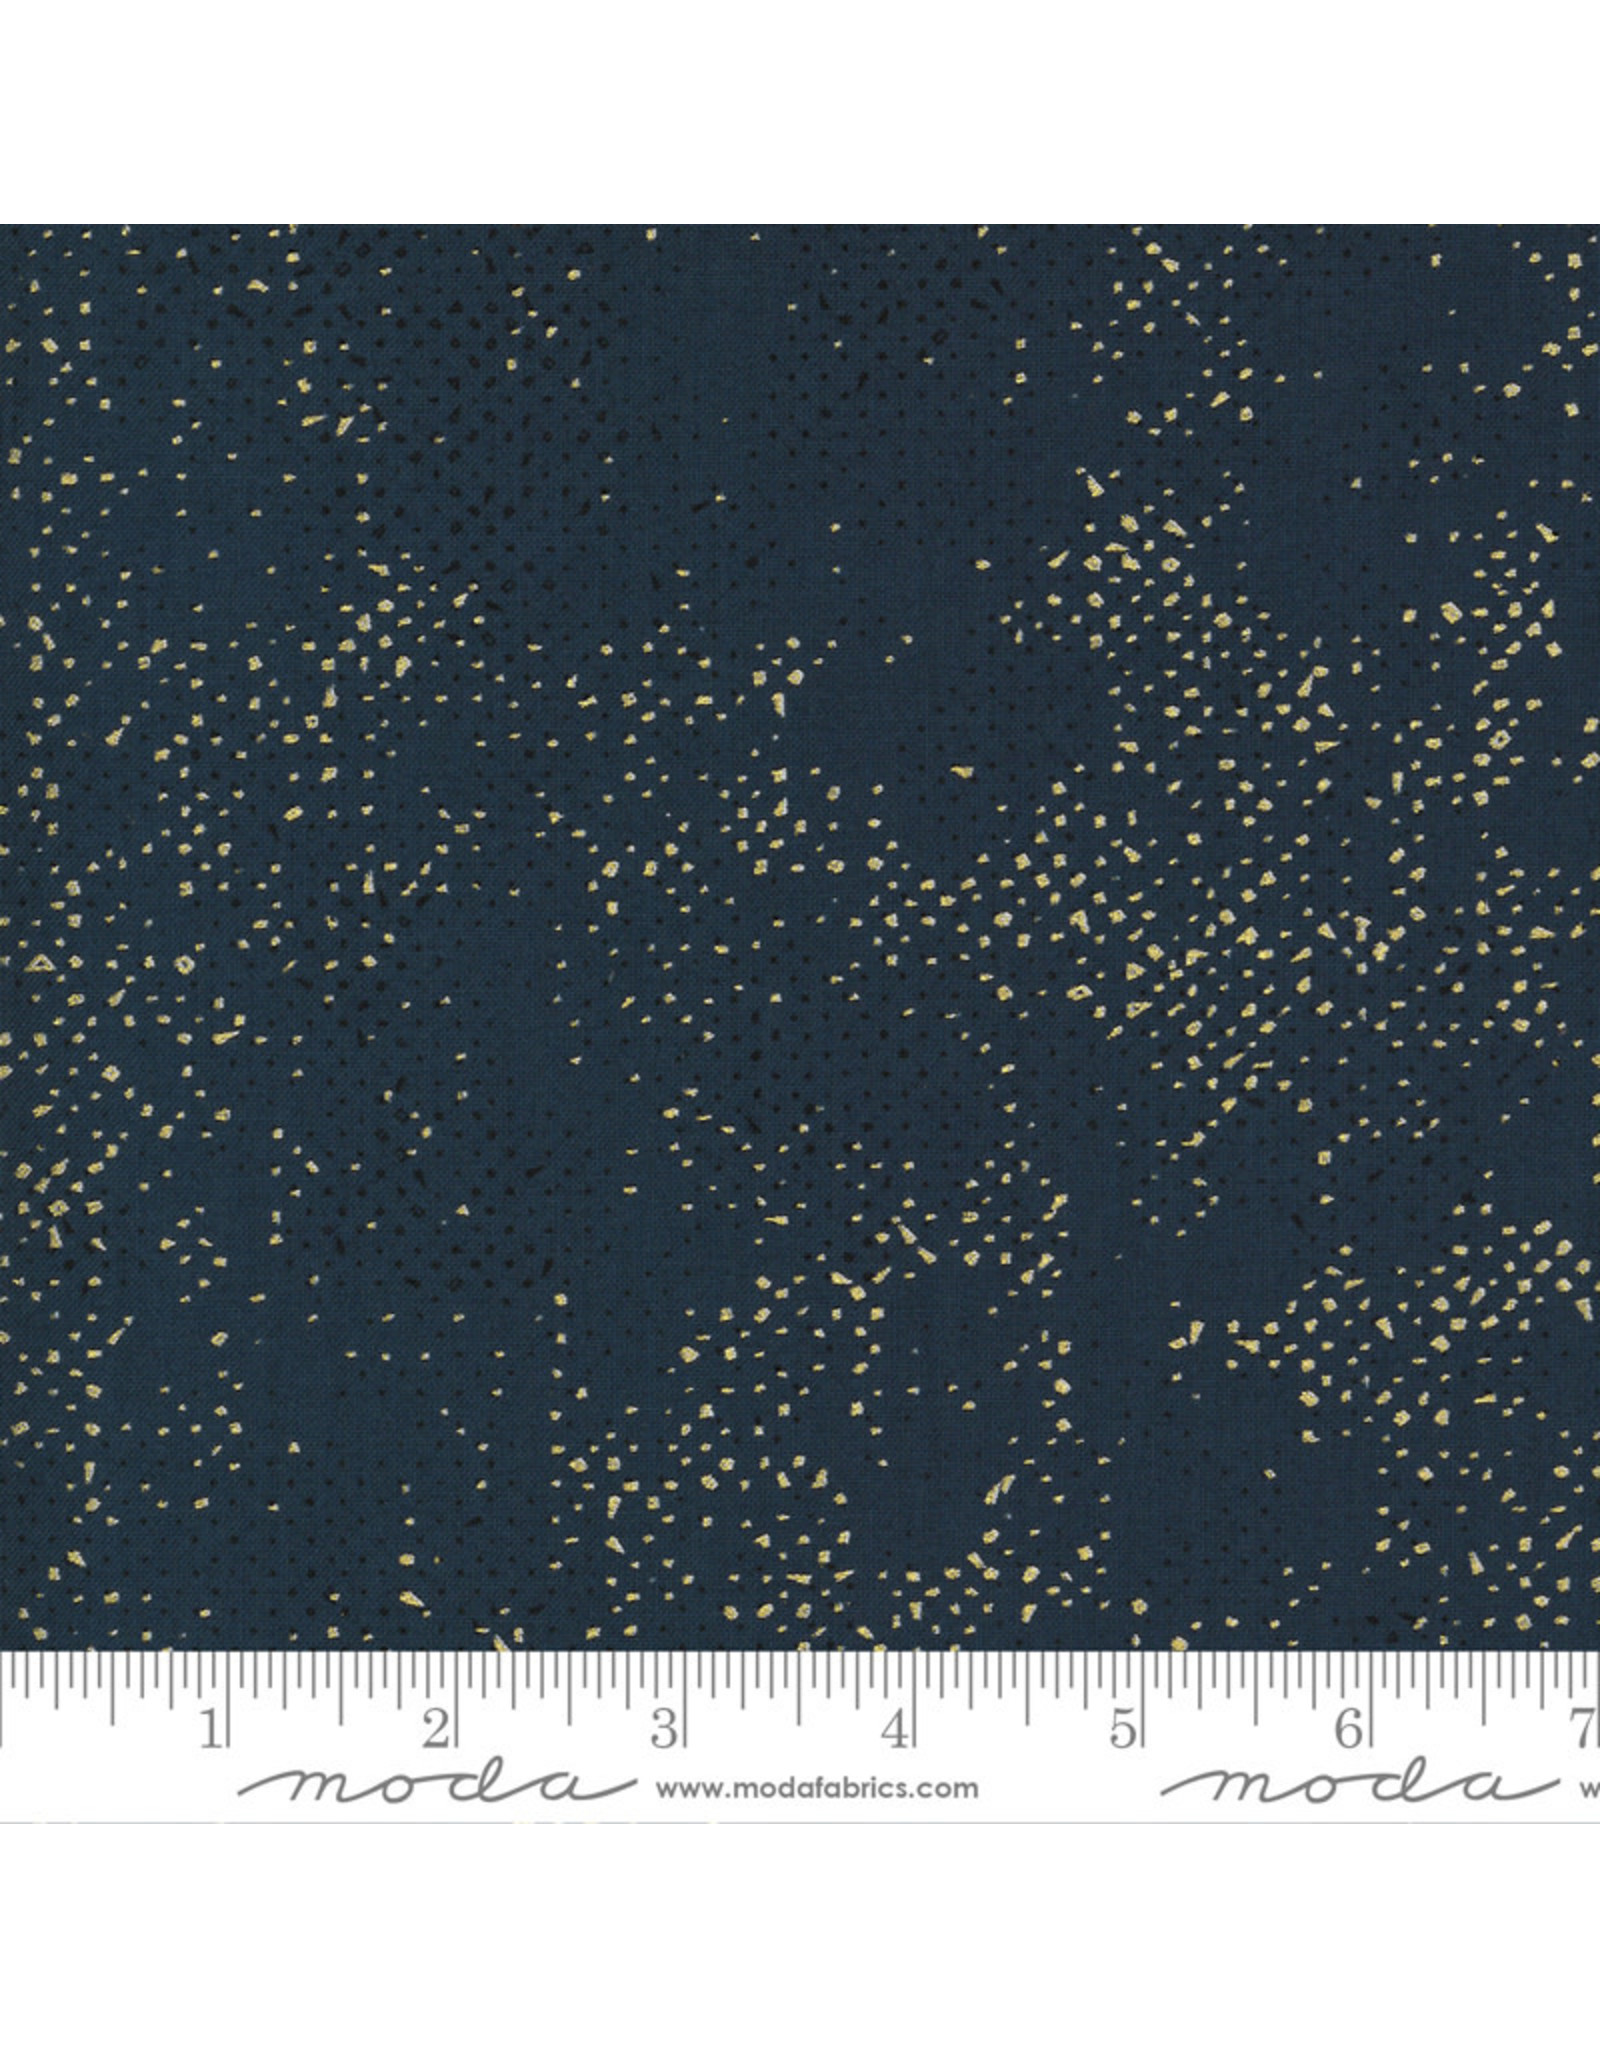 PD's Moda Collection Dance in Paris, Spotted Gold Metallic Dots in Navy, Dinner Napkin